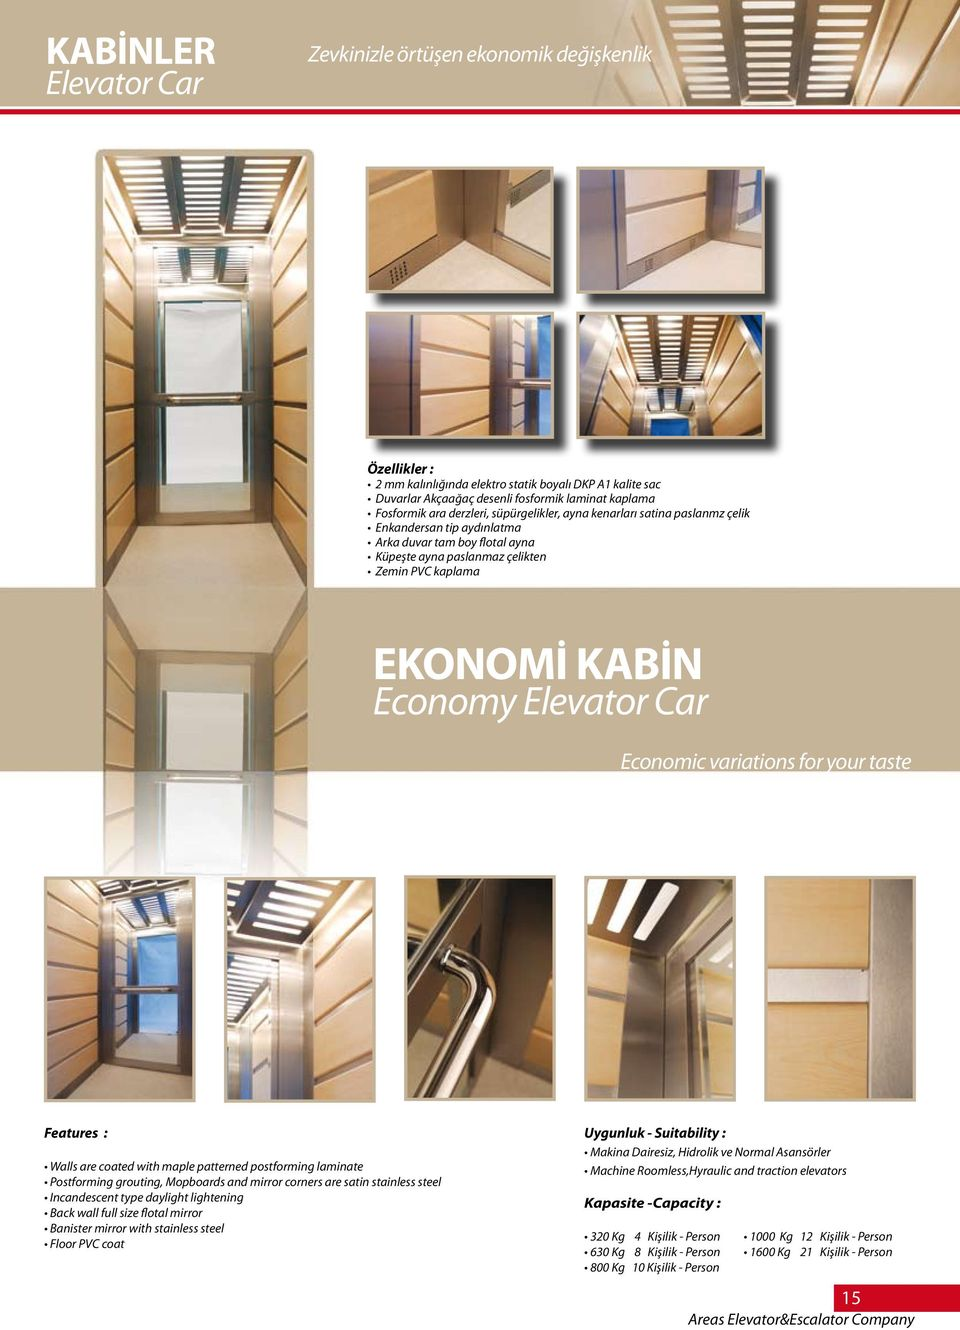 Elevator Car Economic variations for your taste Features : Walls are coated with maple patterned postforming laminate Postforming grouting, Mopboards and mirror corners are satin stainless steel